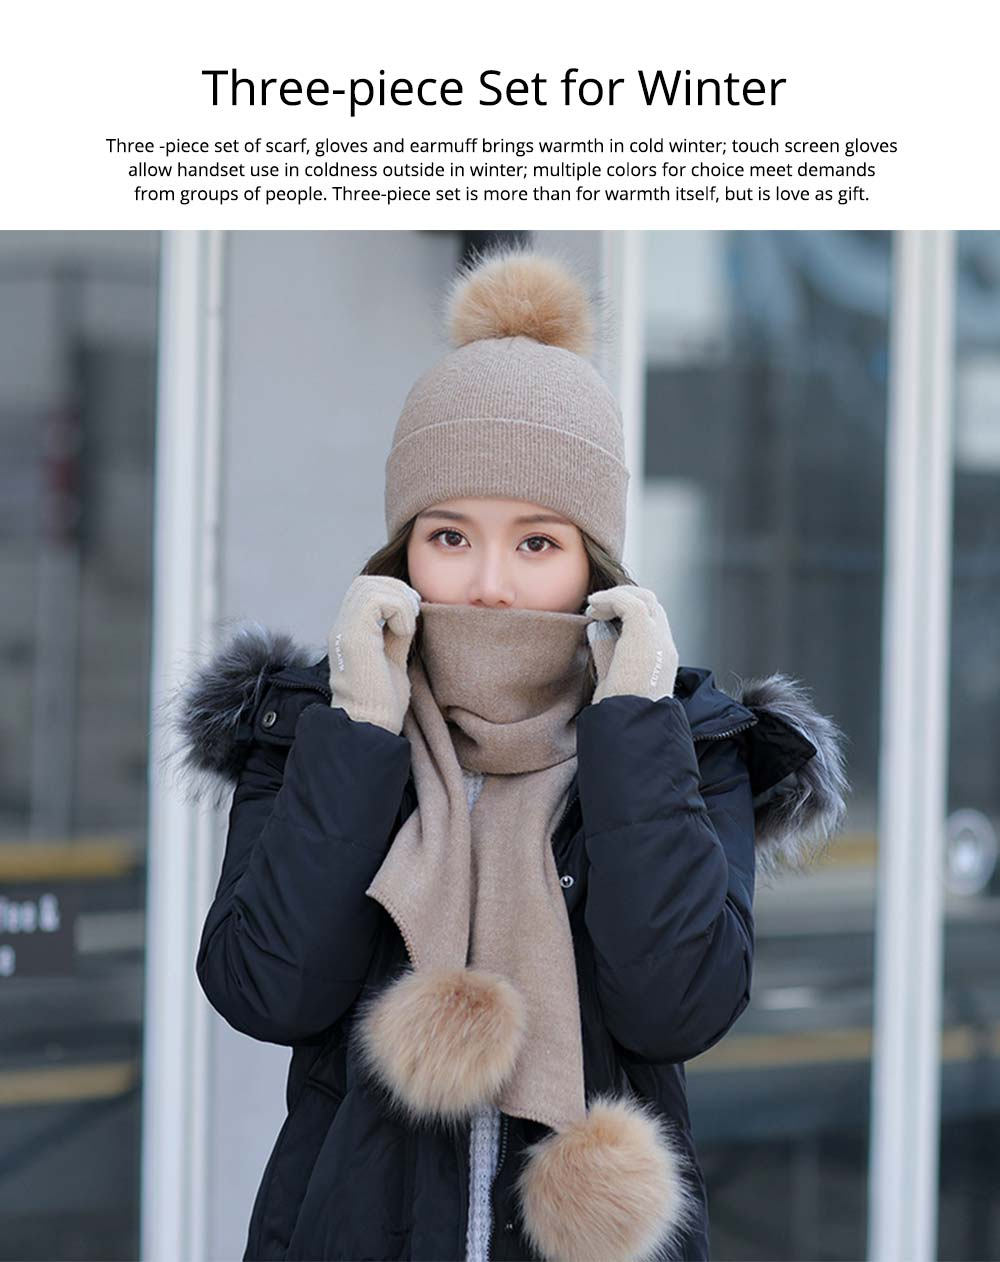 Wool-added Thickened Set of Scarf Hat Gloves as Birthday Gift for Girlfriend Confidant Boyfriend, Three-piece Set for Cold Winter 6